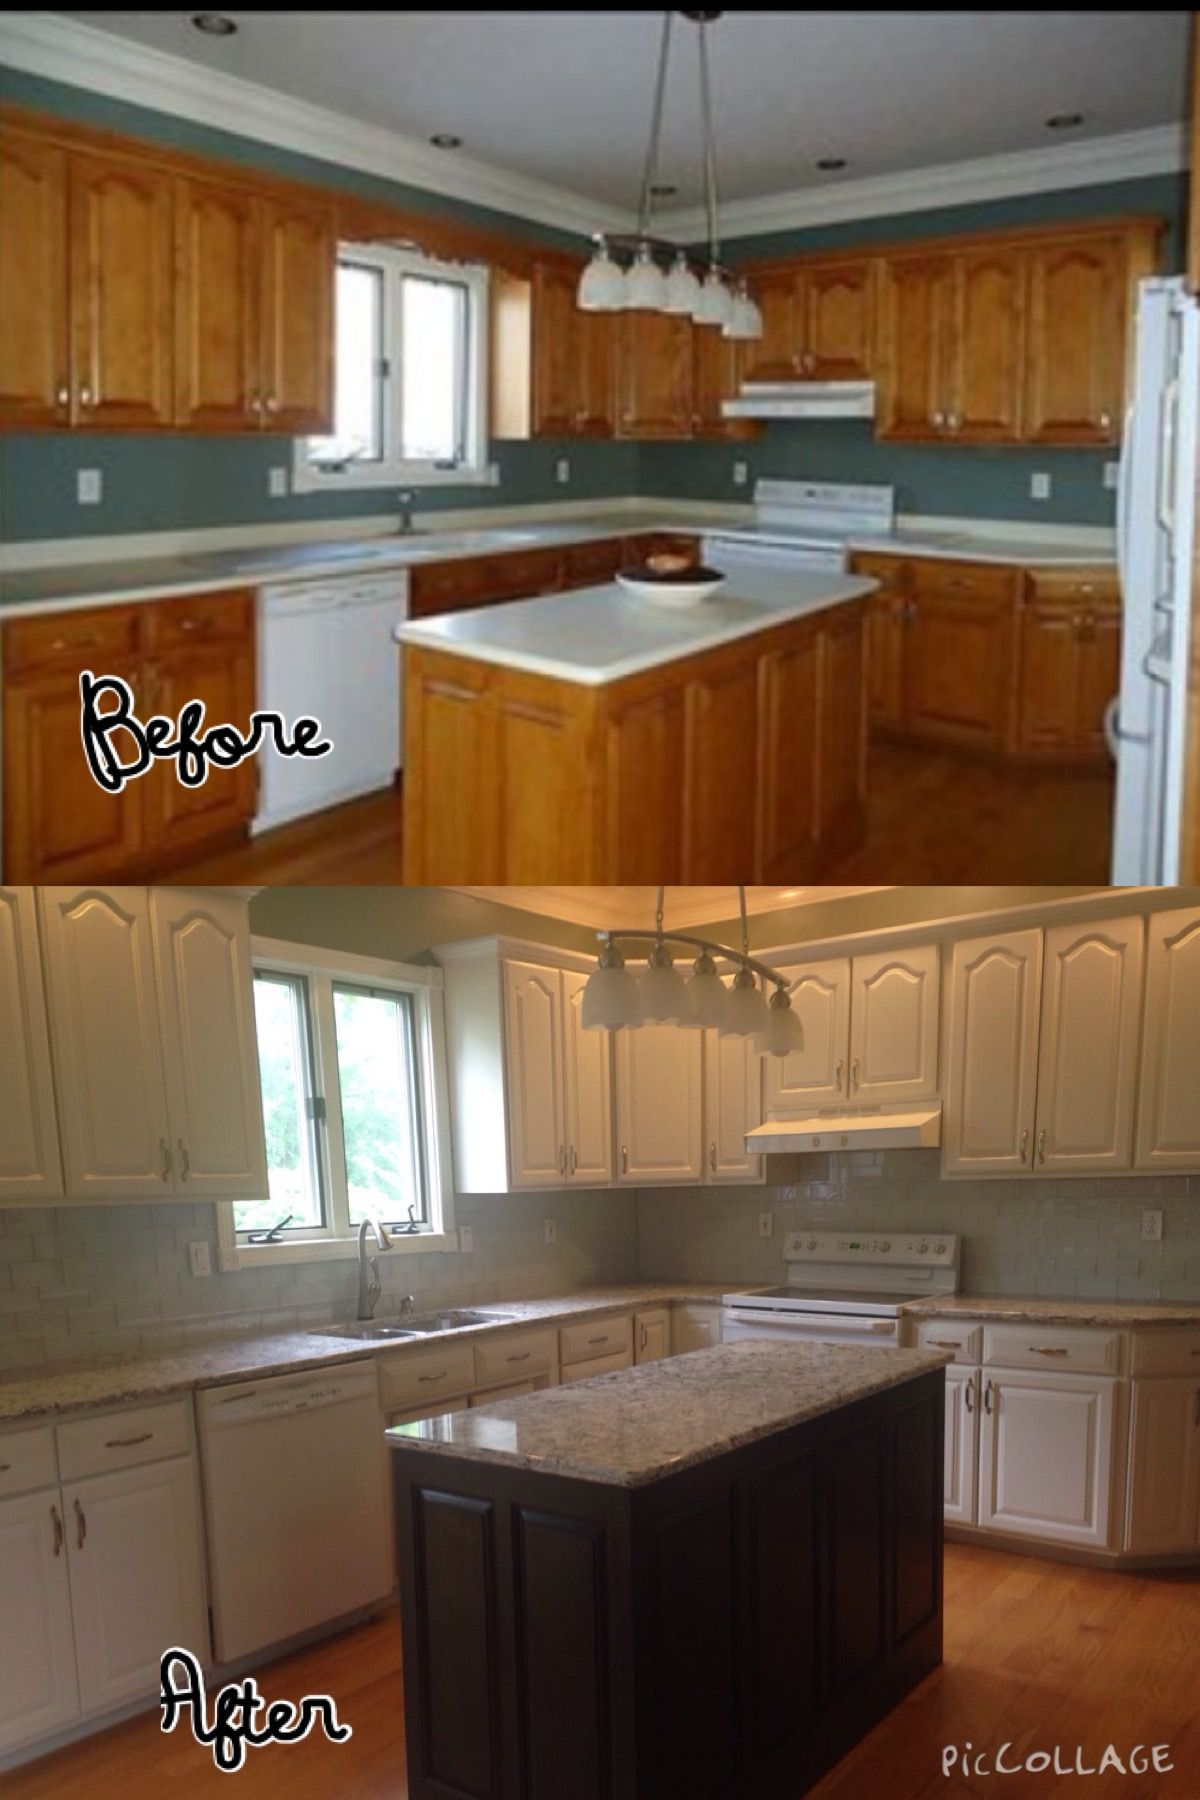 Average Cost For New Kitchen Cabinets Pin By Nicole Lewis On Kitchen Pinterest Kitchen